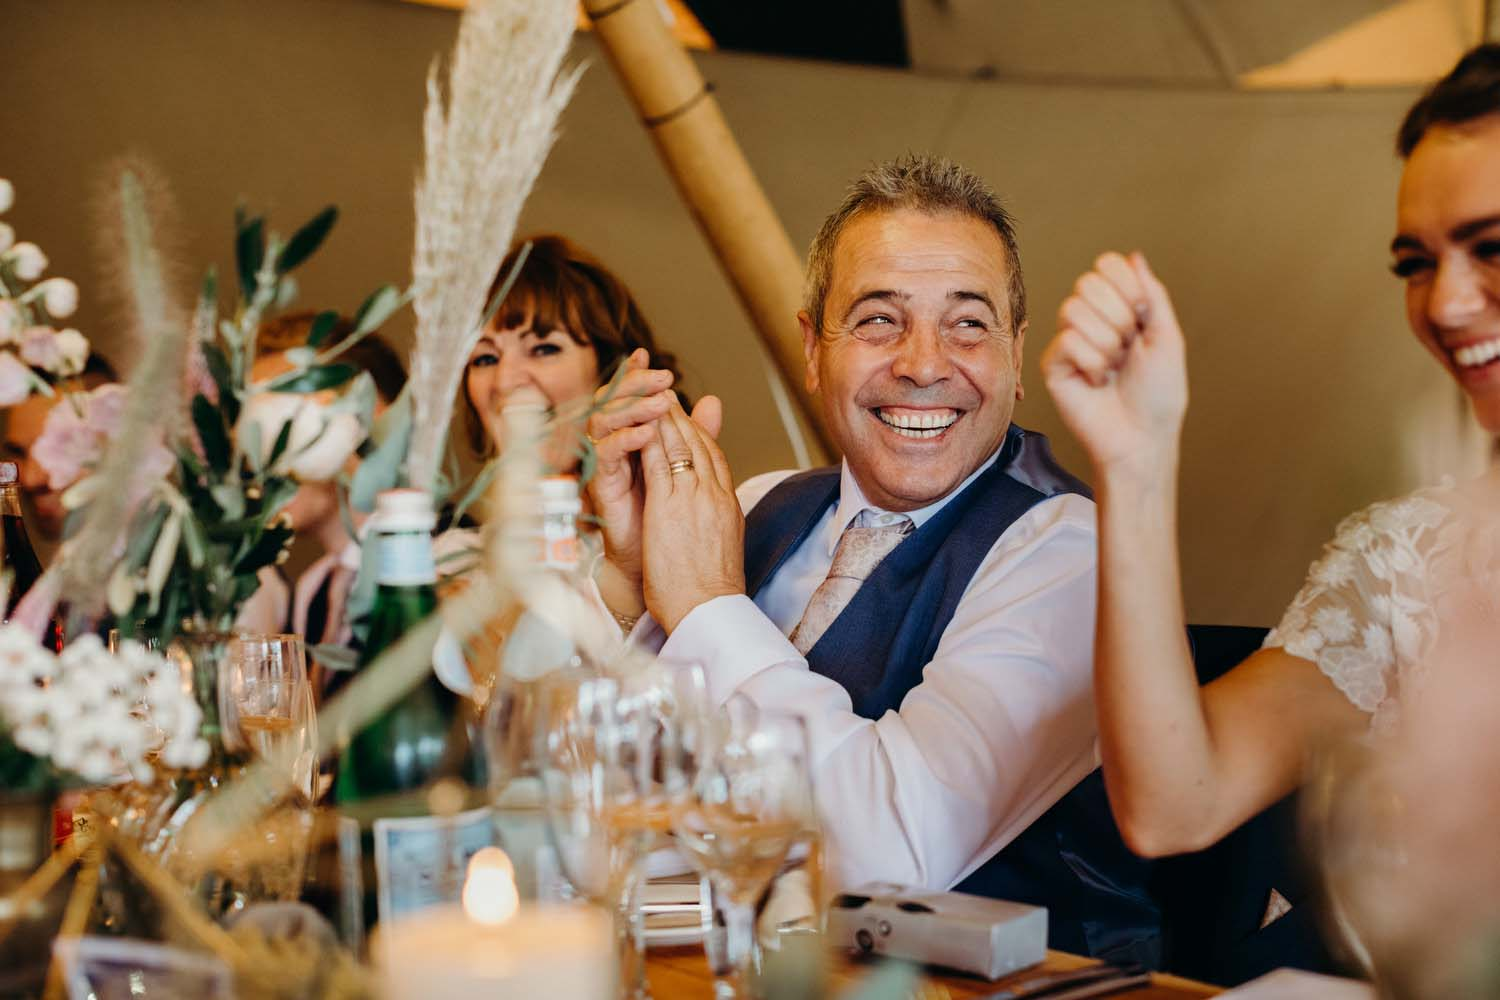 Father of bride clapping